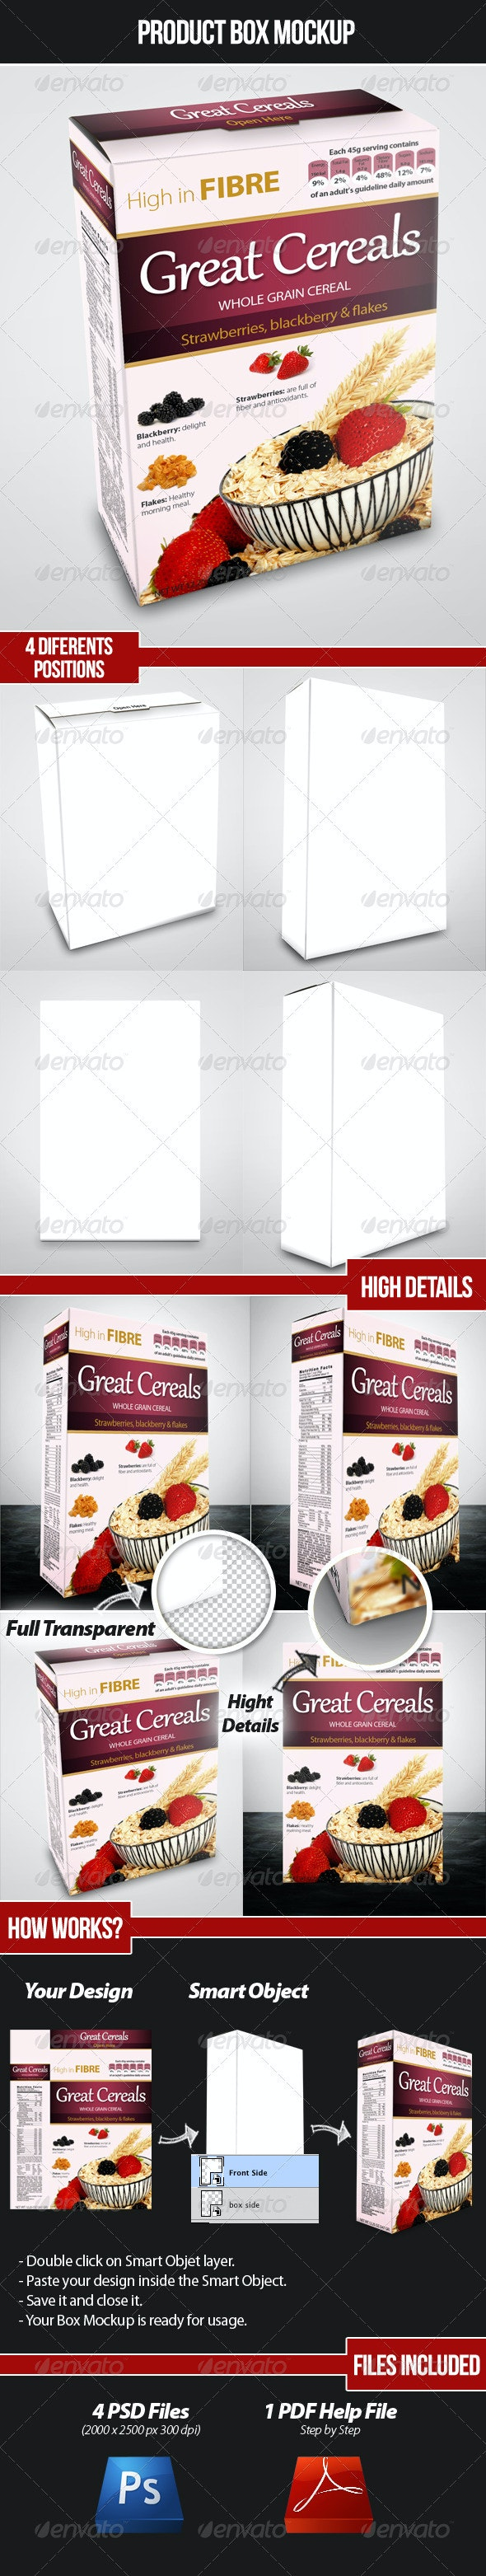 Product Box Mockup - Food and Drink Packaging